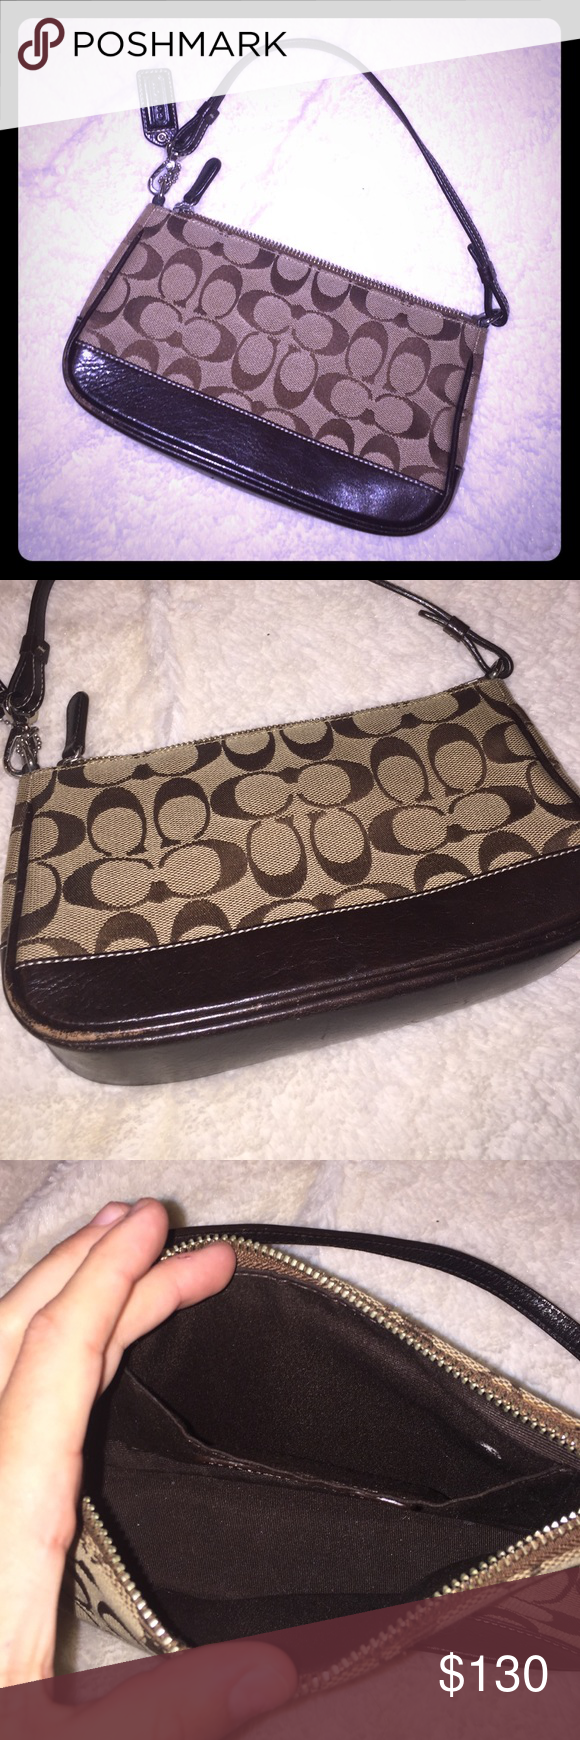 Real authentic small coach purse! Excellent condition small Coach purse. 100% authentic absolutely no damage at all. This piece would be a great addition to anyone's closet! :) Coach Bags Mini Bags